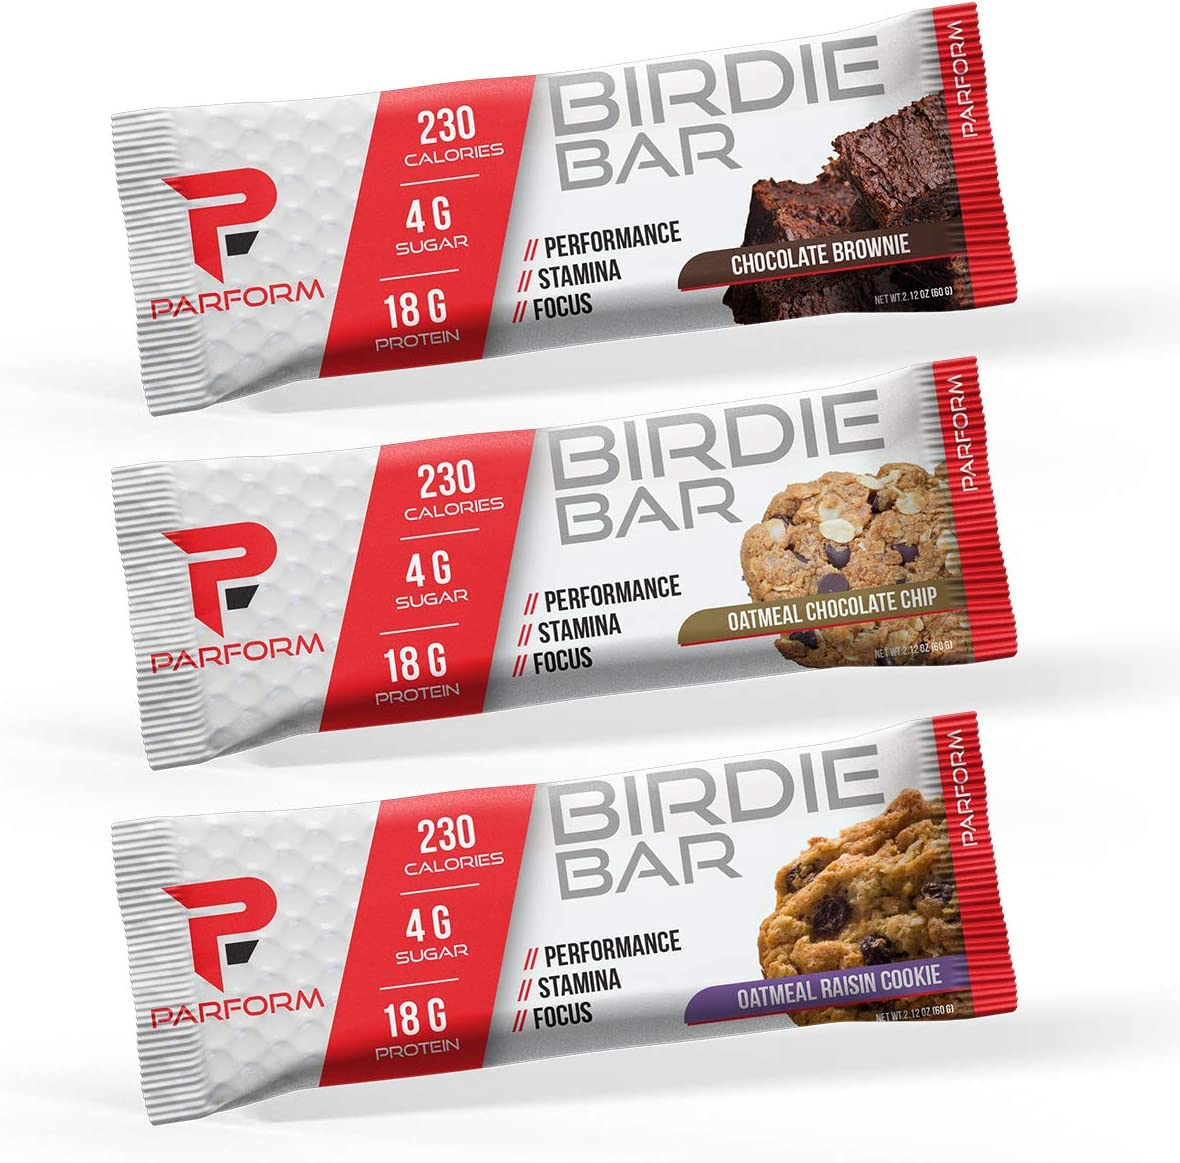 Parform Birdie Bar High Protein Bar All-In-One Performance Nutrition Bar 230 Calorie